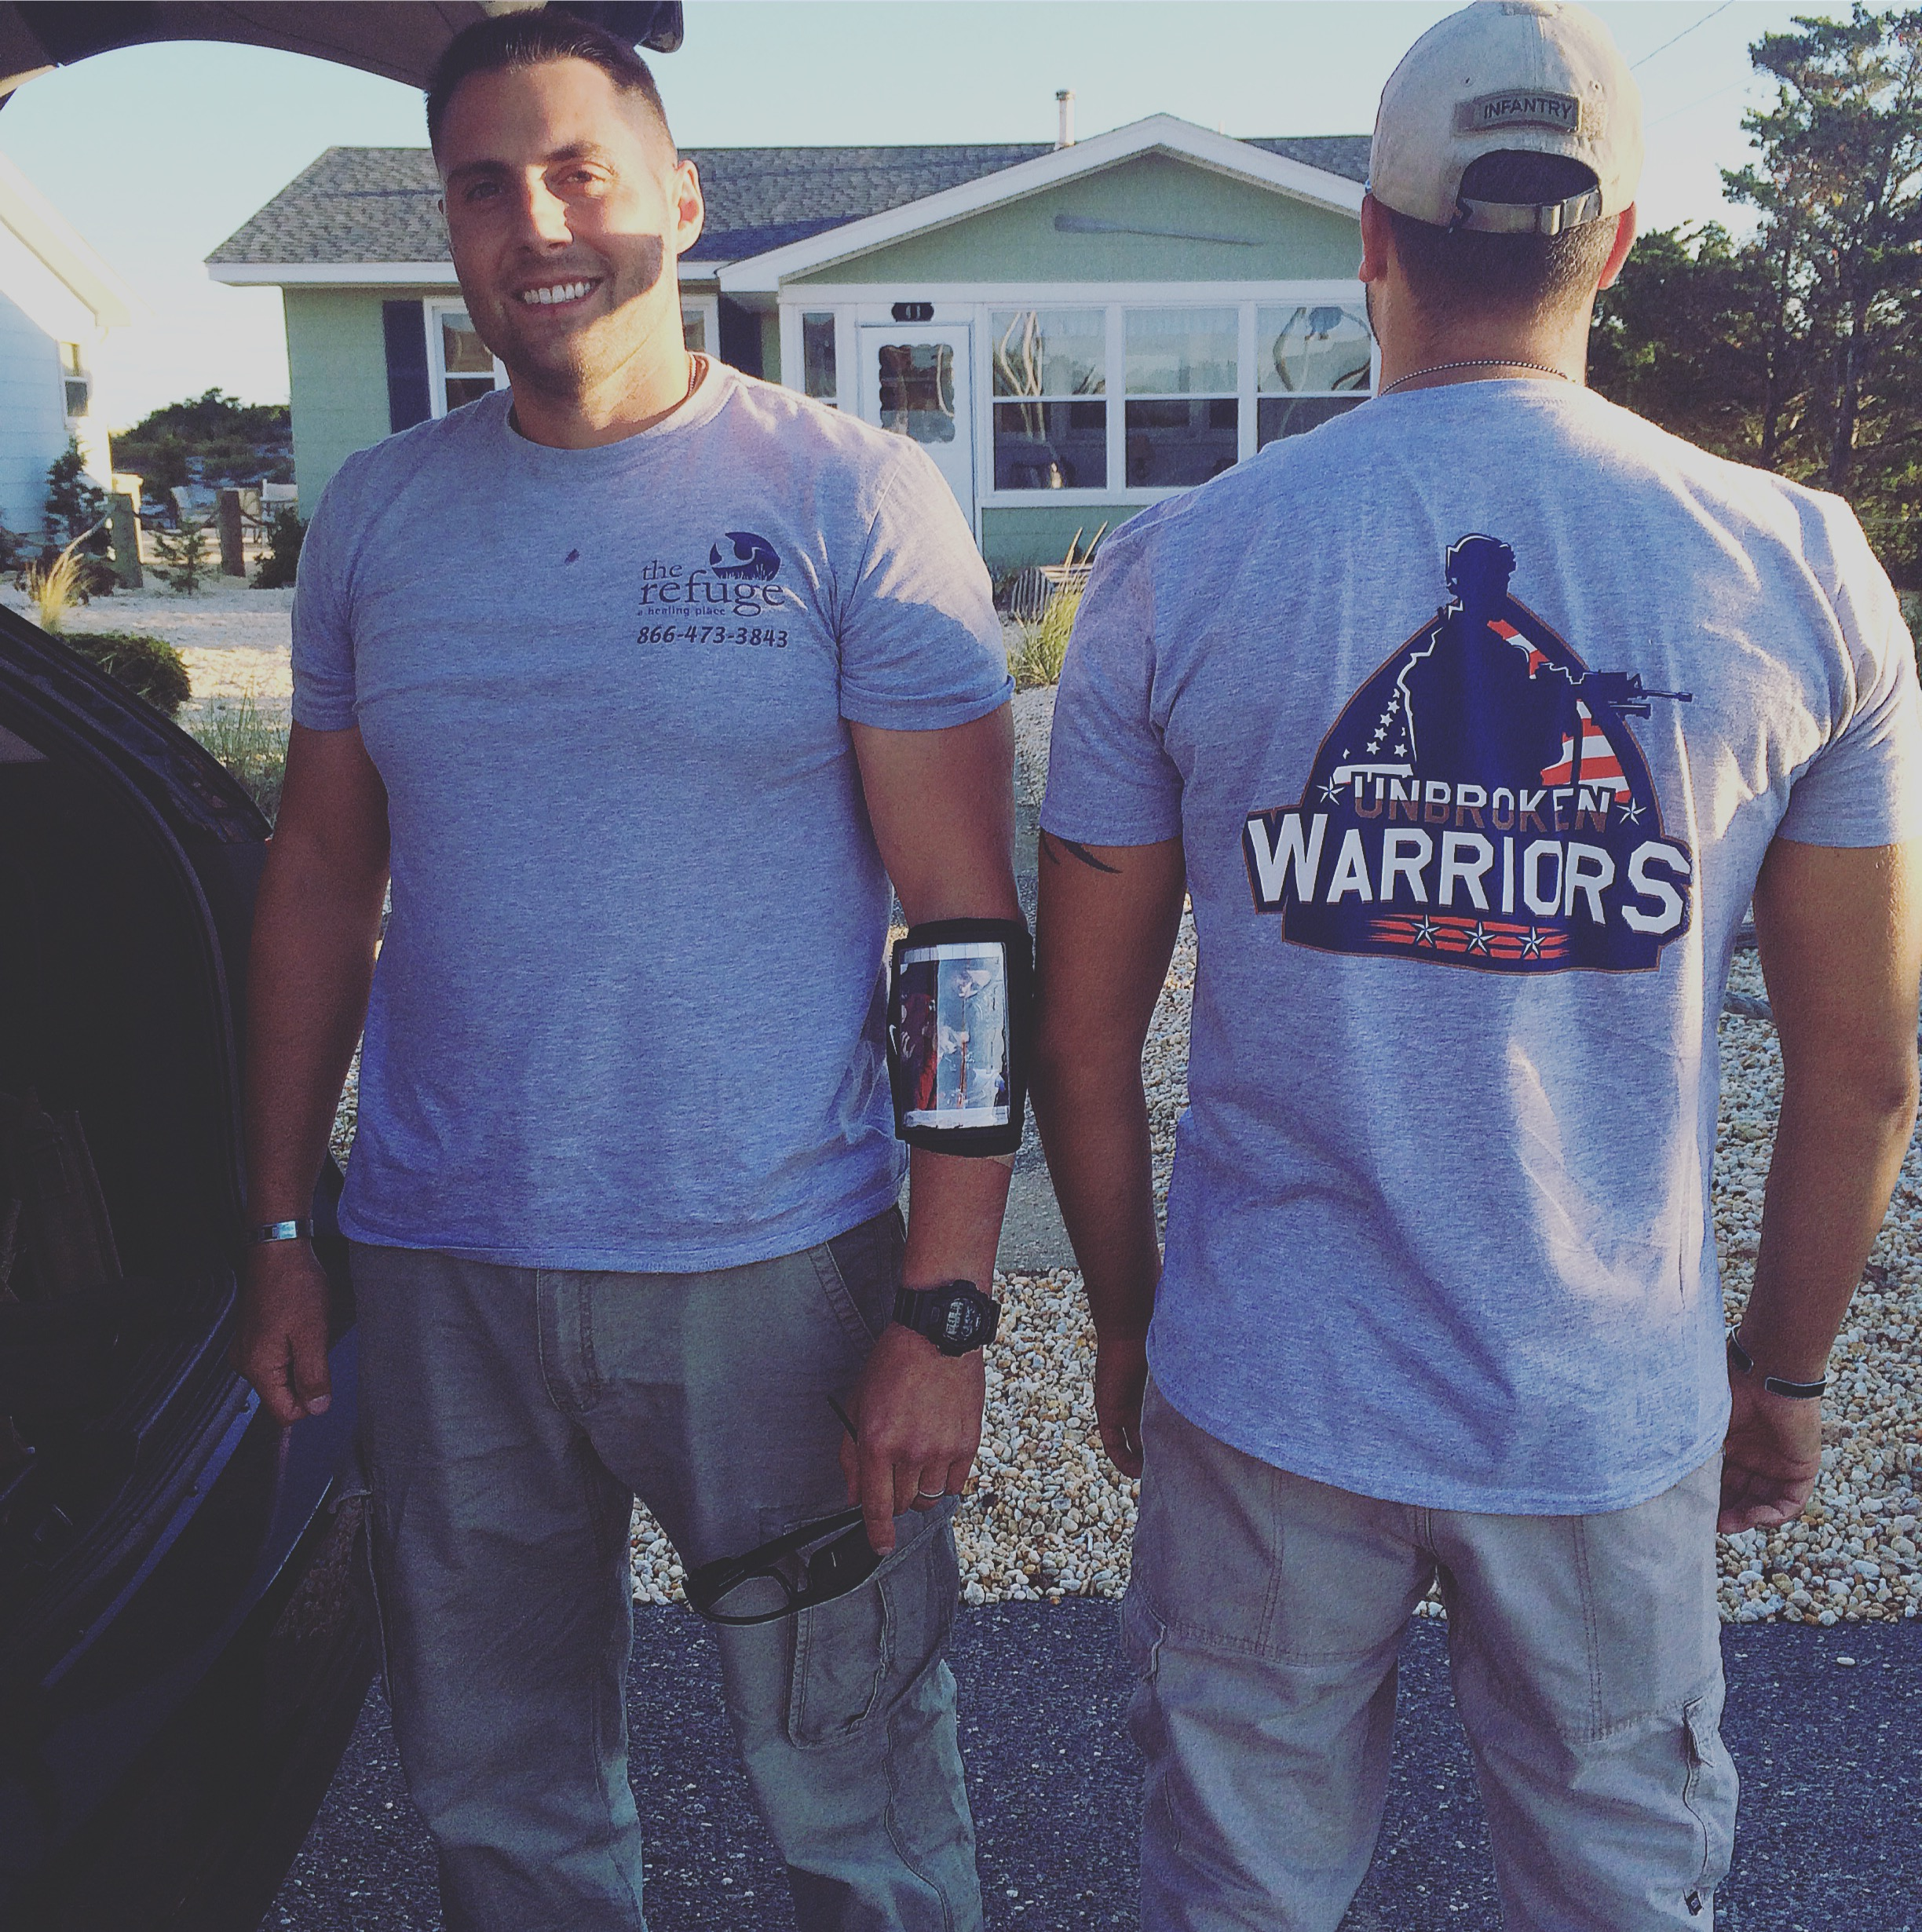 Volunteer with Unbroken Warriors